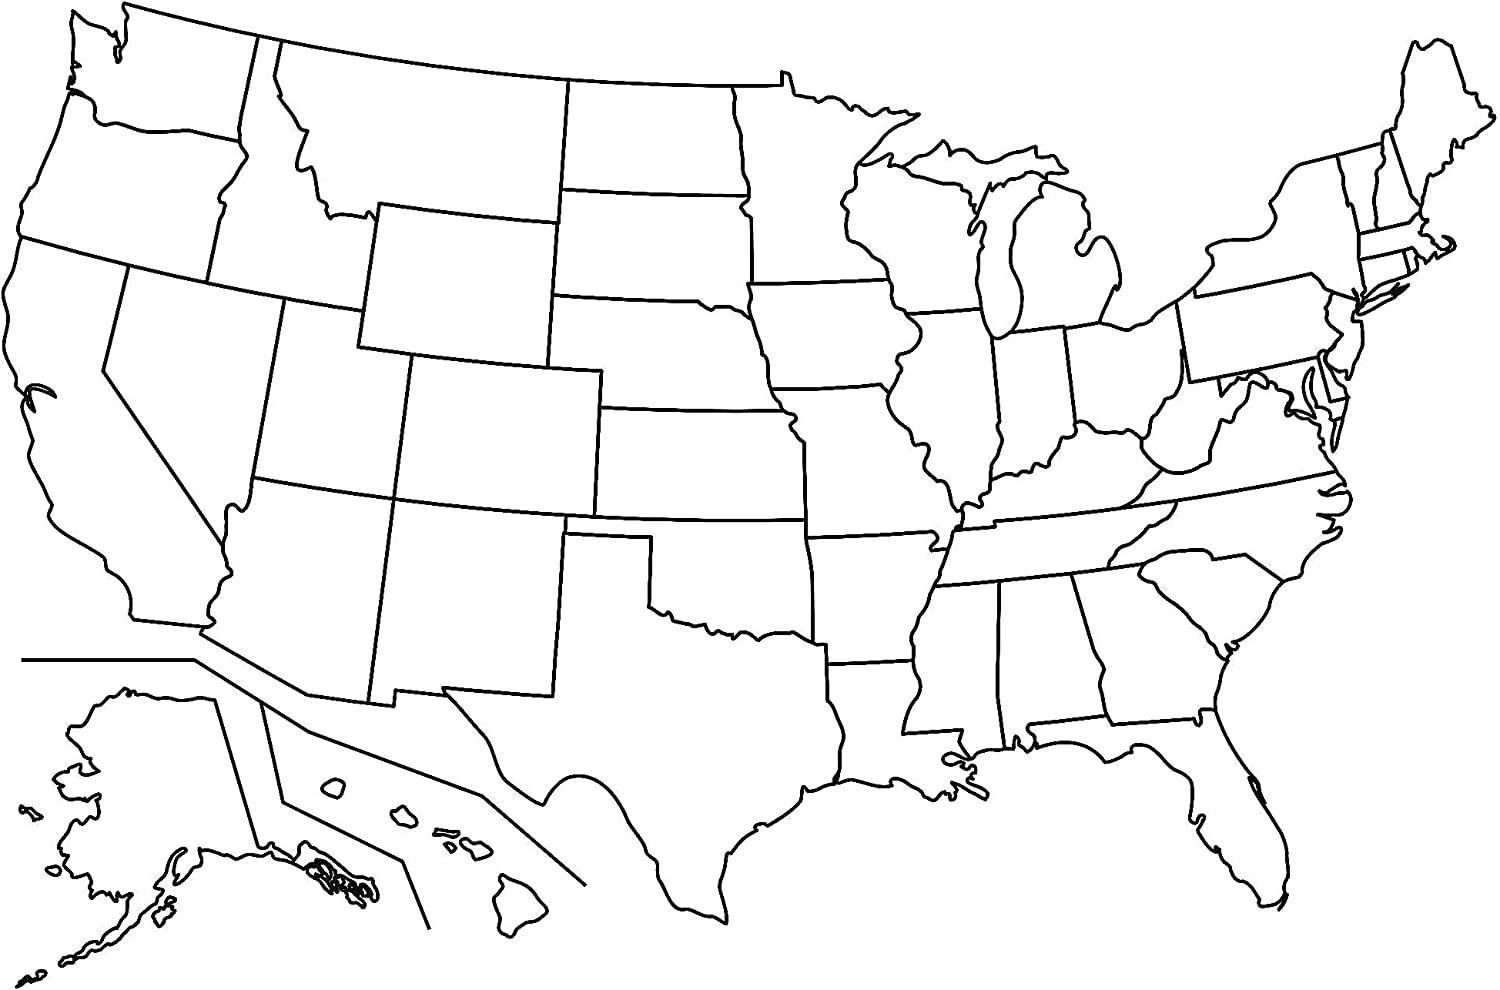 Us Map White And Black Amazon.com: Map   Us Map No Labels Blank Simple of United States